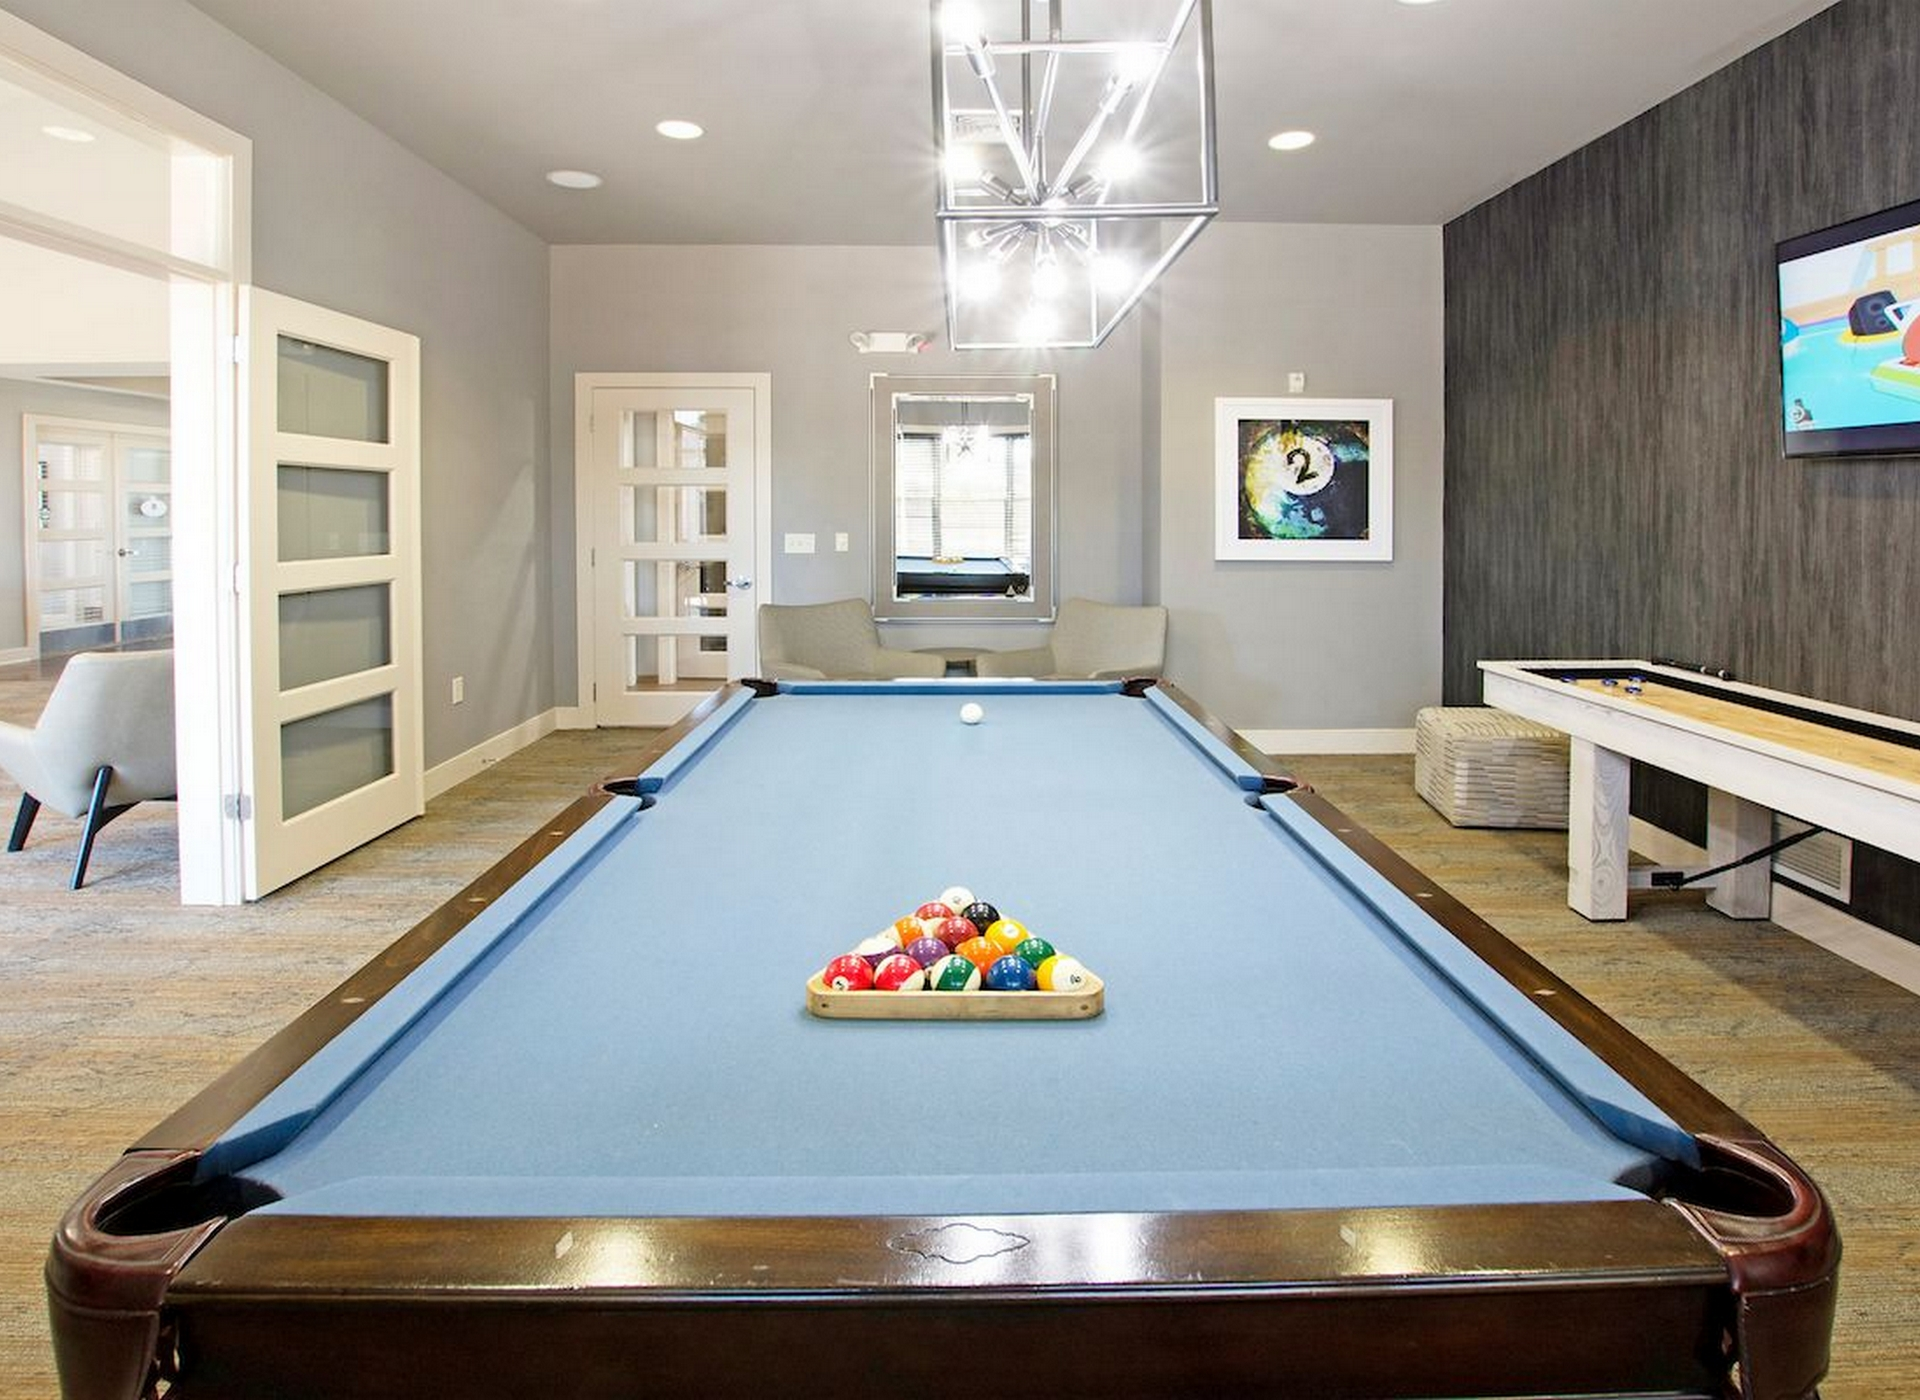 Image of community game room with pool table